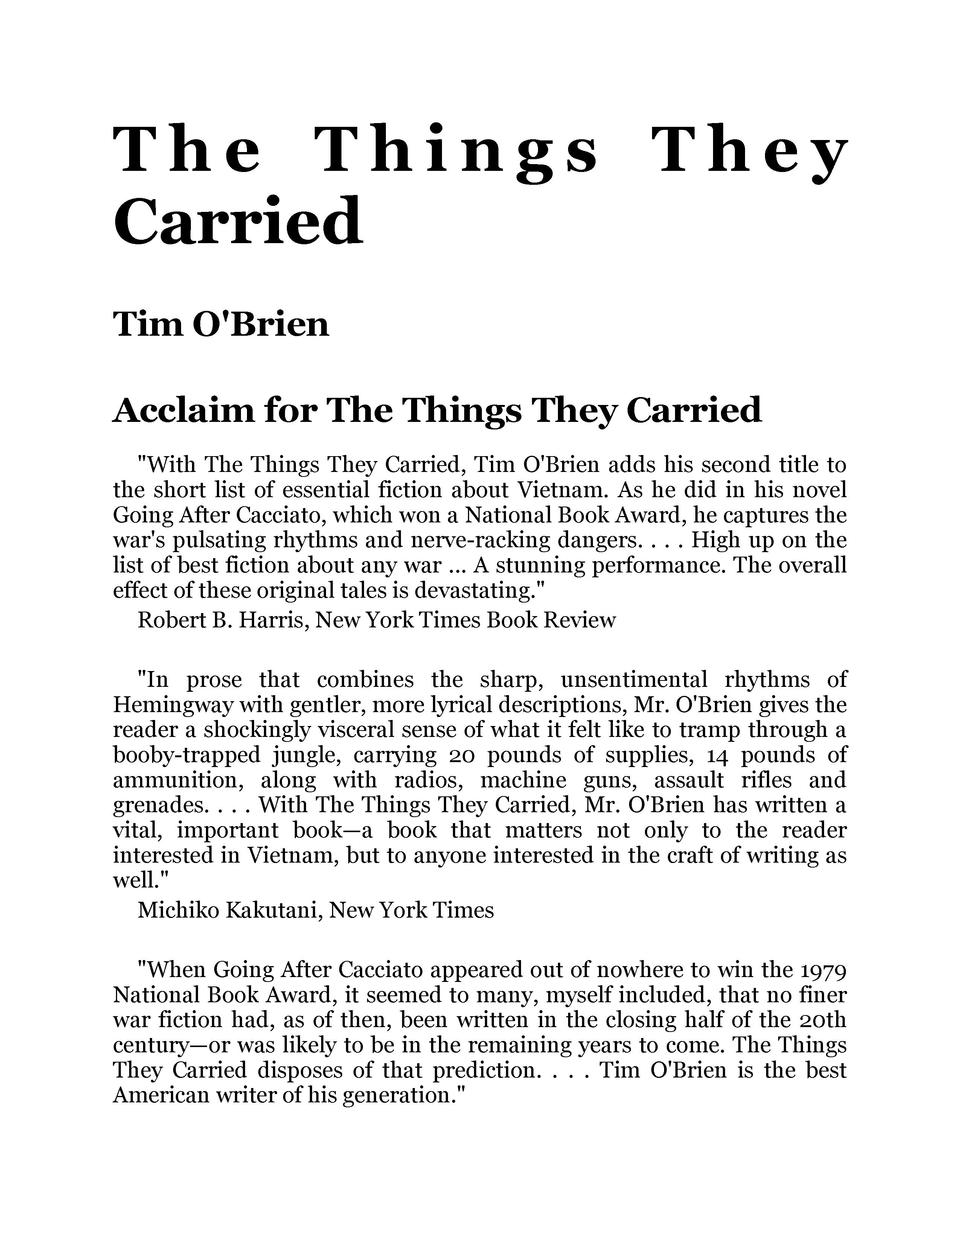 Tim Obrien Rhetorical Strategies in the Things They Carried